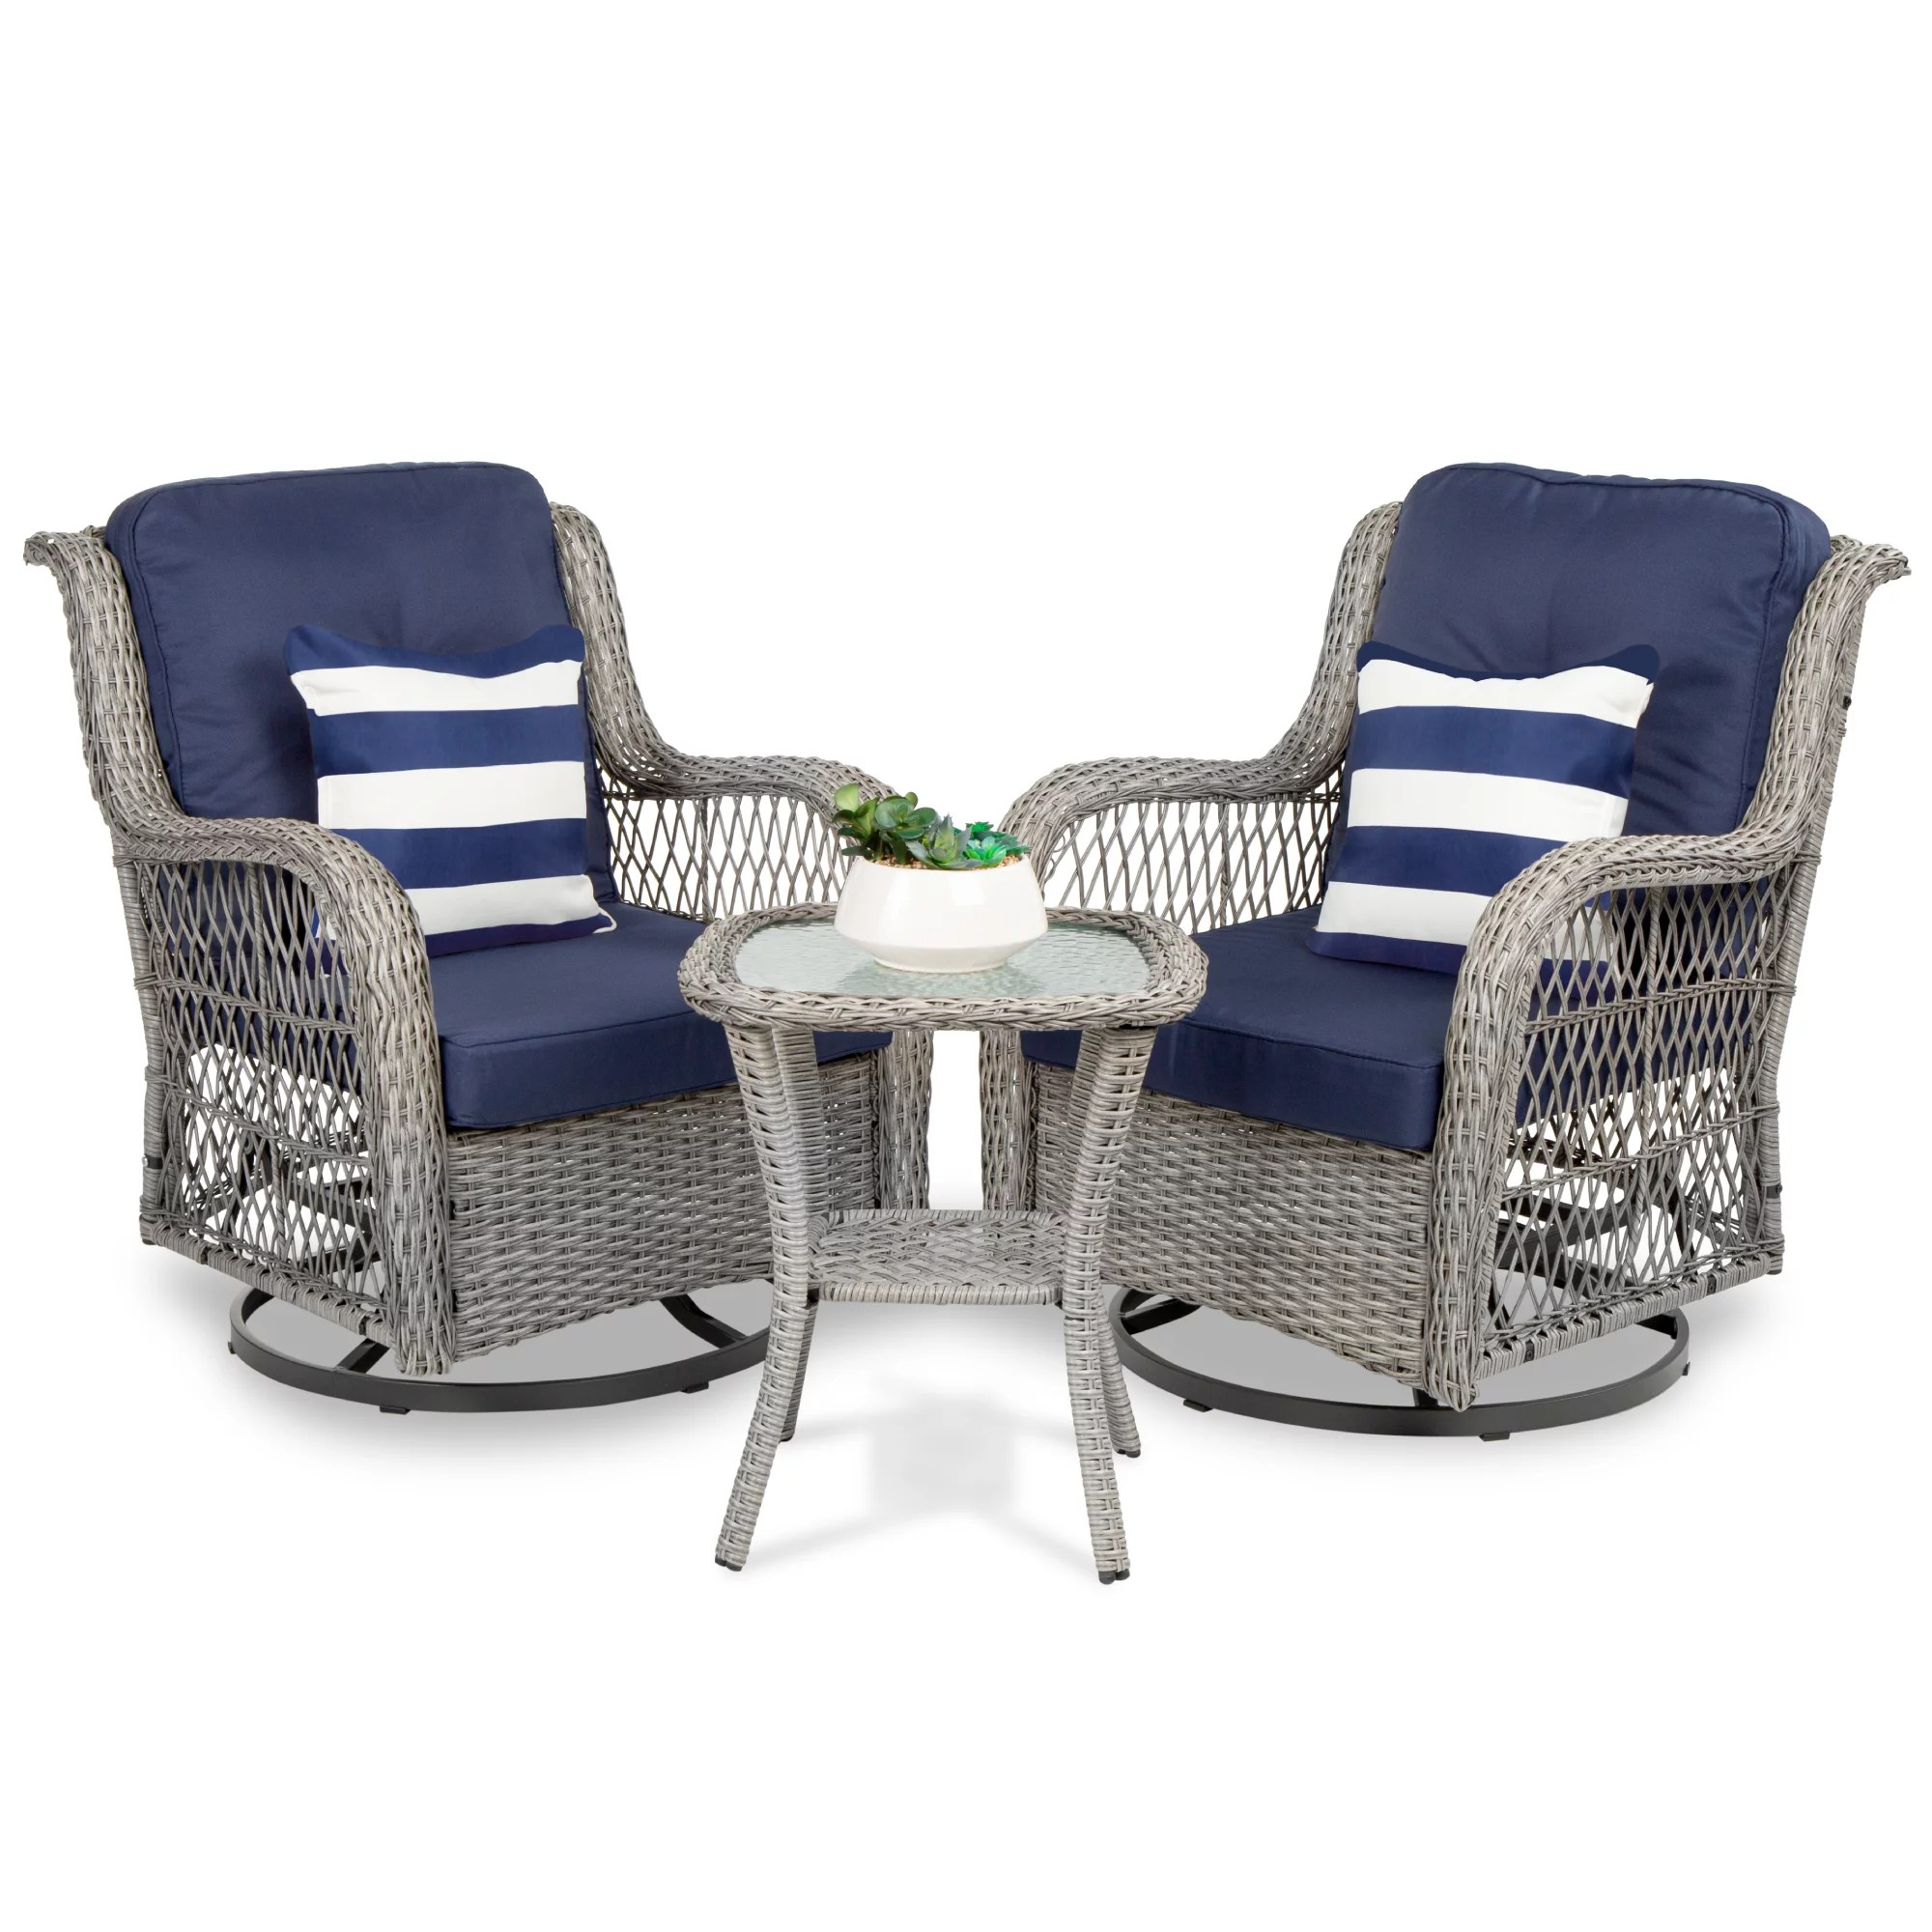 best choice products 3 piece patio wicker bistro furniture set w 2 cushioned swivel rocking chairs side table navy